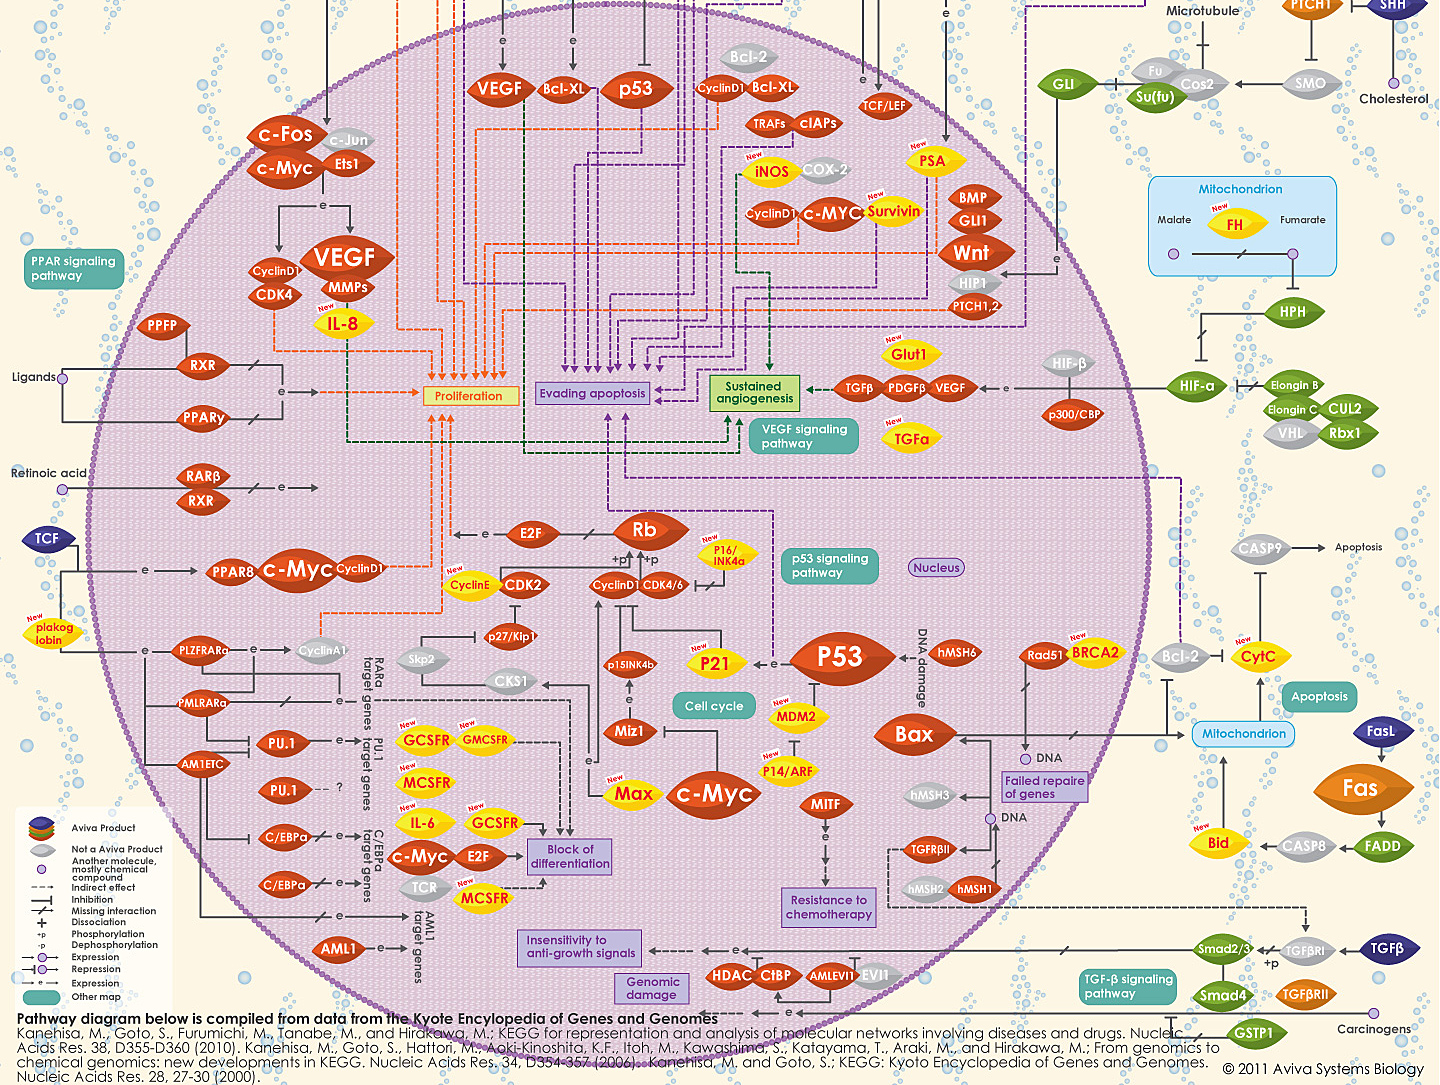 Pathways in Cancer image by Aviva System Biology bottom